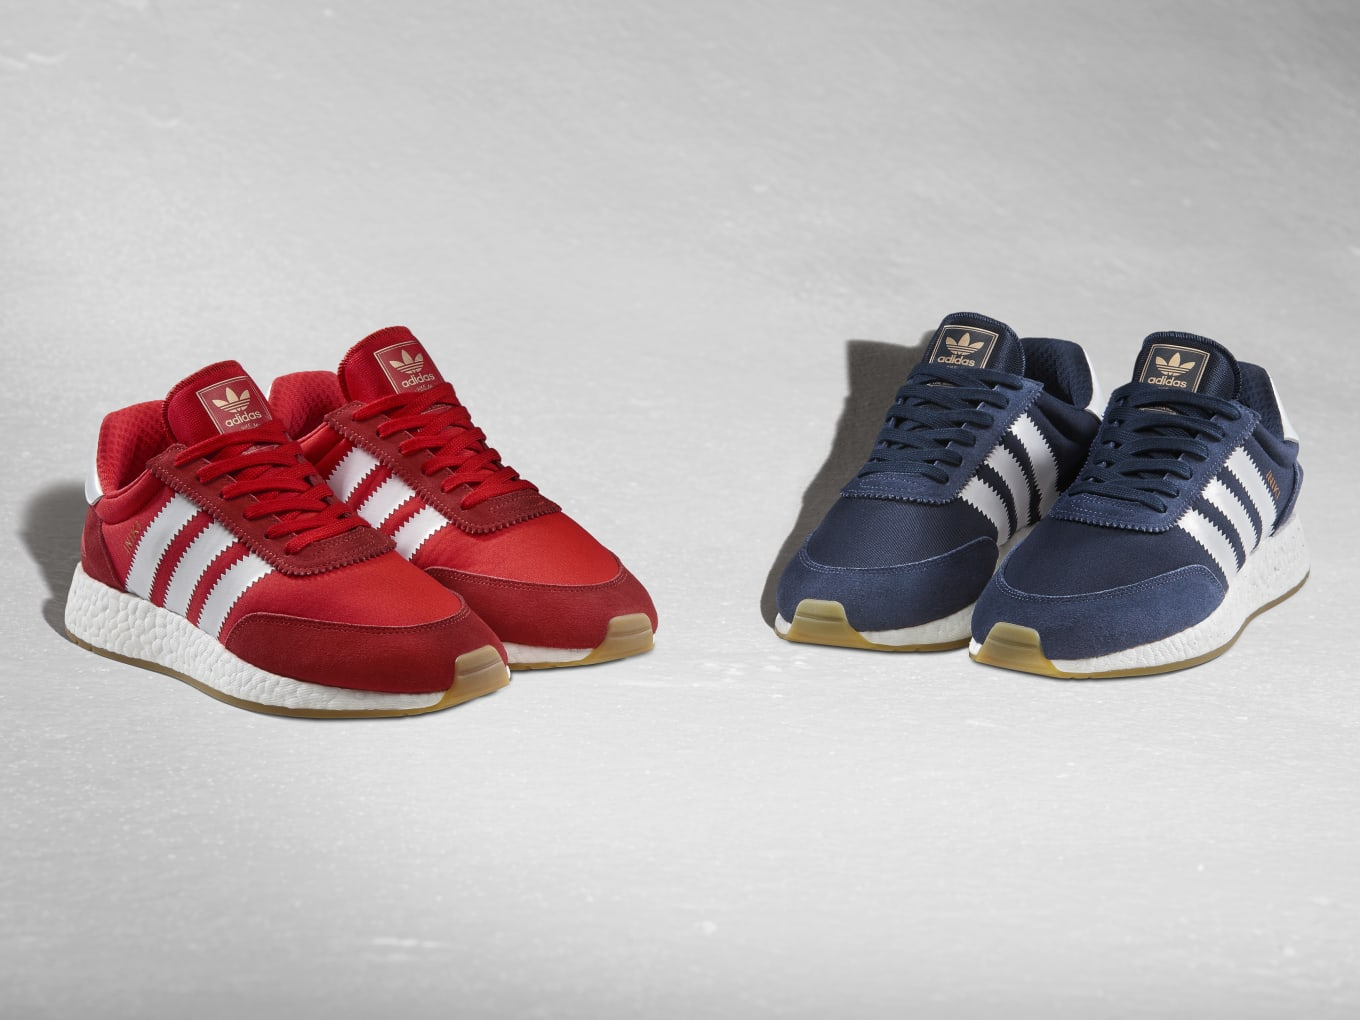 62ef0874ba6 Adidas Introduces a New Boost Sneaker. The Iniki Runner. By Amir Ismael